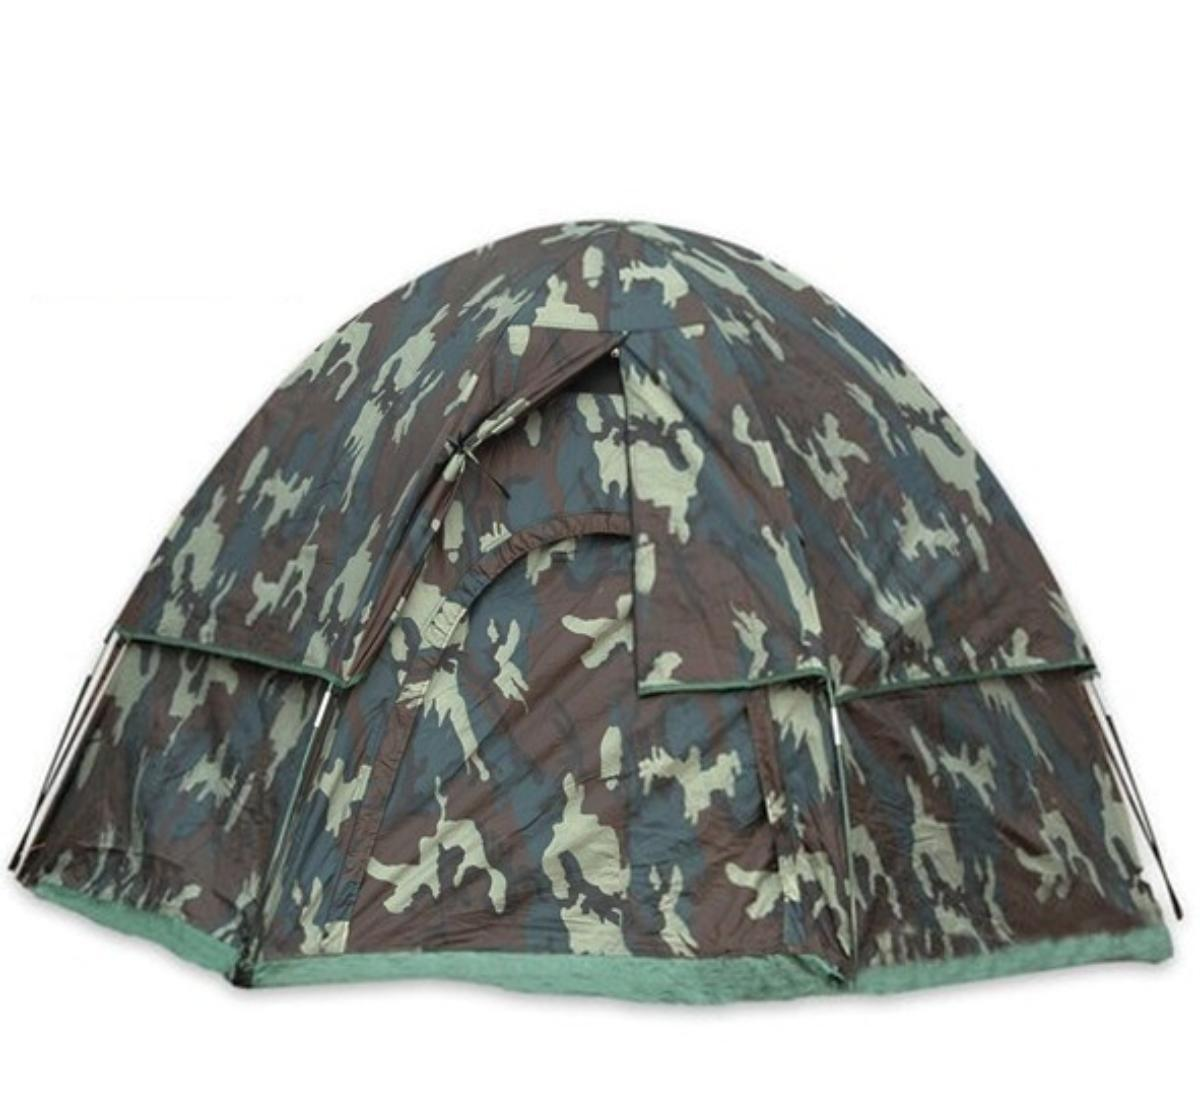 Woodland Camo 3-Man Hexagon Dome Tent  sc 1 st  Walmart & Woodland Camo 3-Man Hexagon Dome Tent - Walmart.com